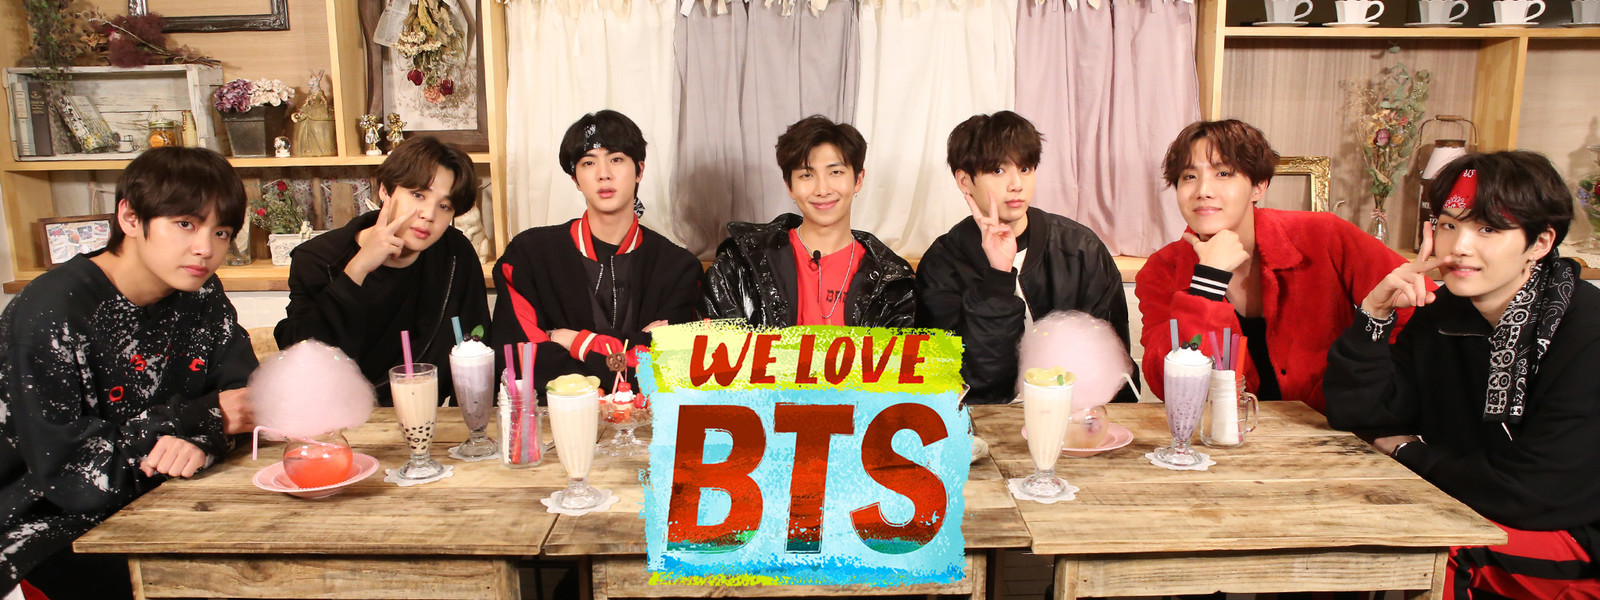 Video] (We Love BTS ) 'Sweets Party in Harajuku' [180705] |